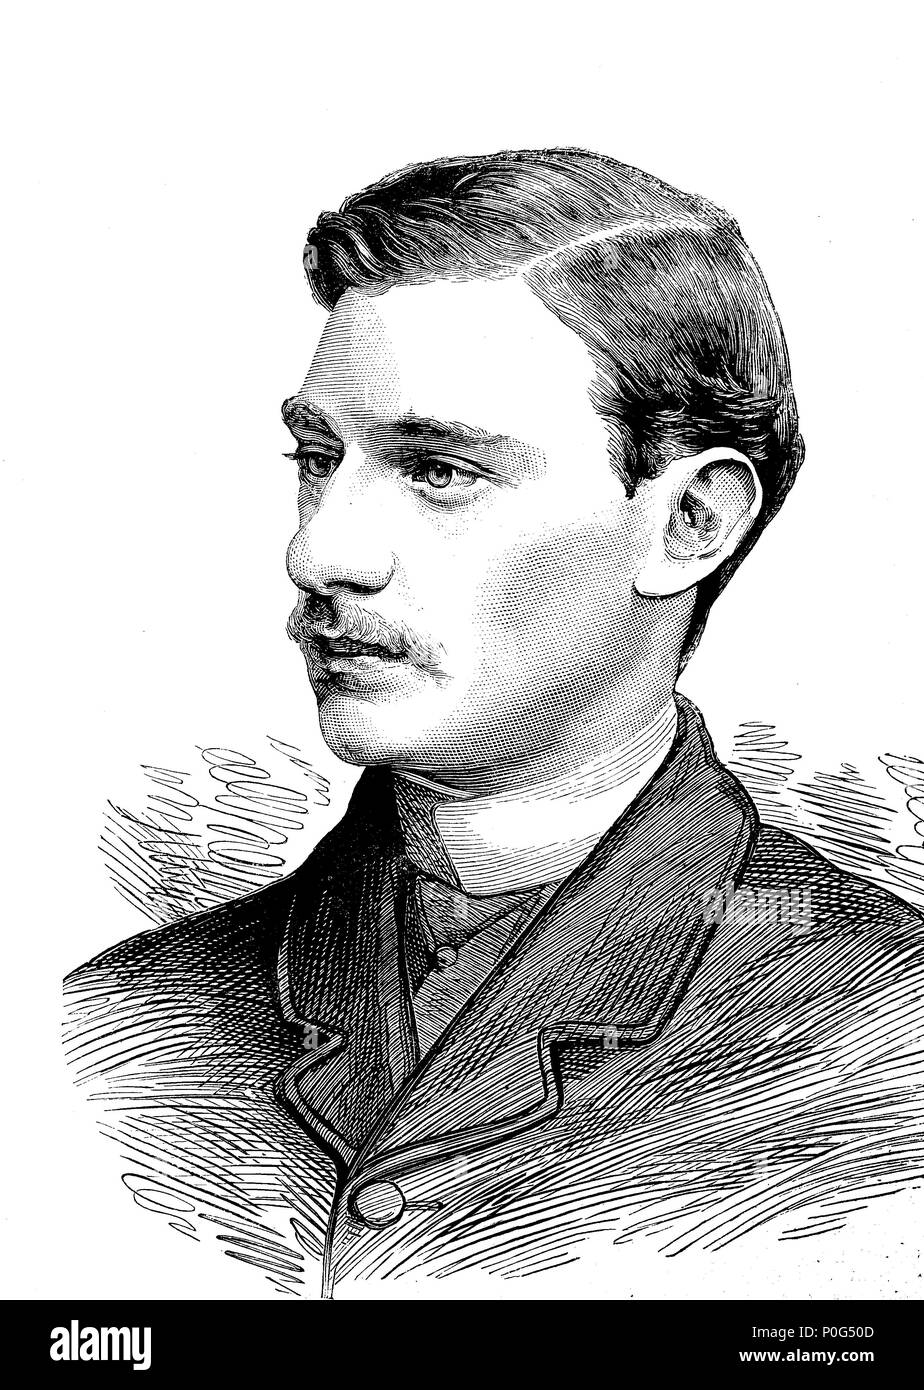 Charles Alfred Worsley Pelham, 4th Earl of Yarborough KG PC (11 June 1859 - 12 July 1936), styled Lord Worsley until 1875, was a British peer and politician, digital improved reproduction of an original print from the year 1881 Stock Photo